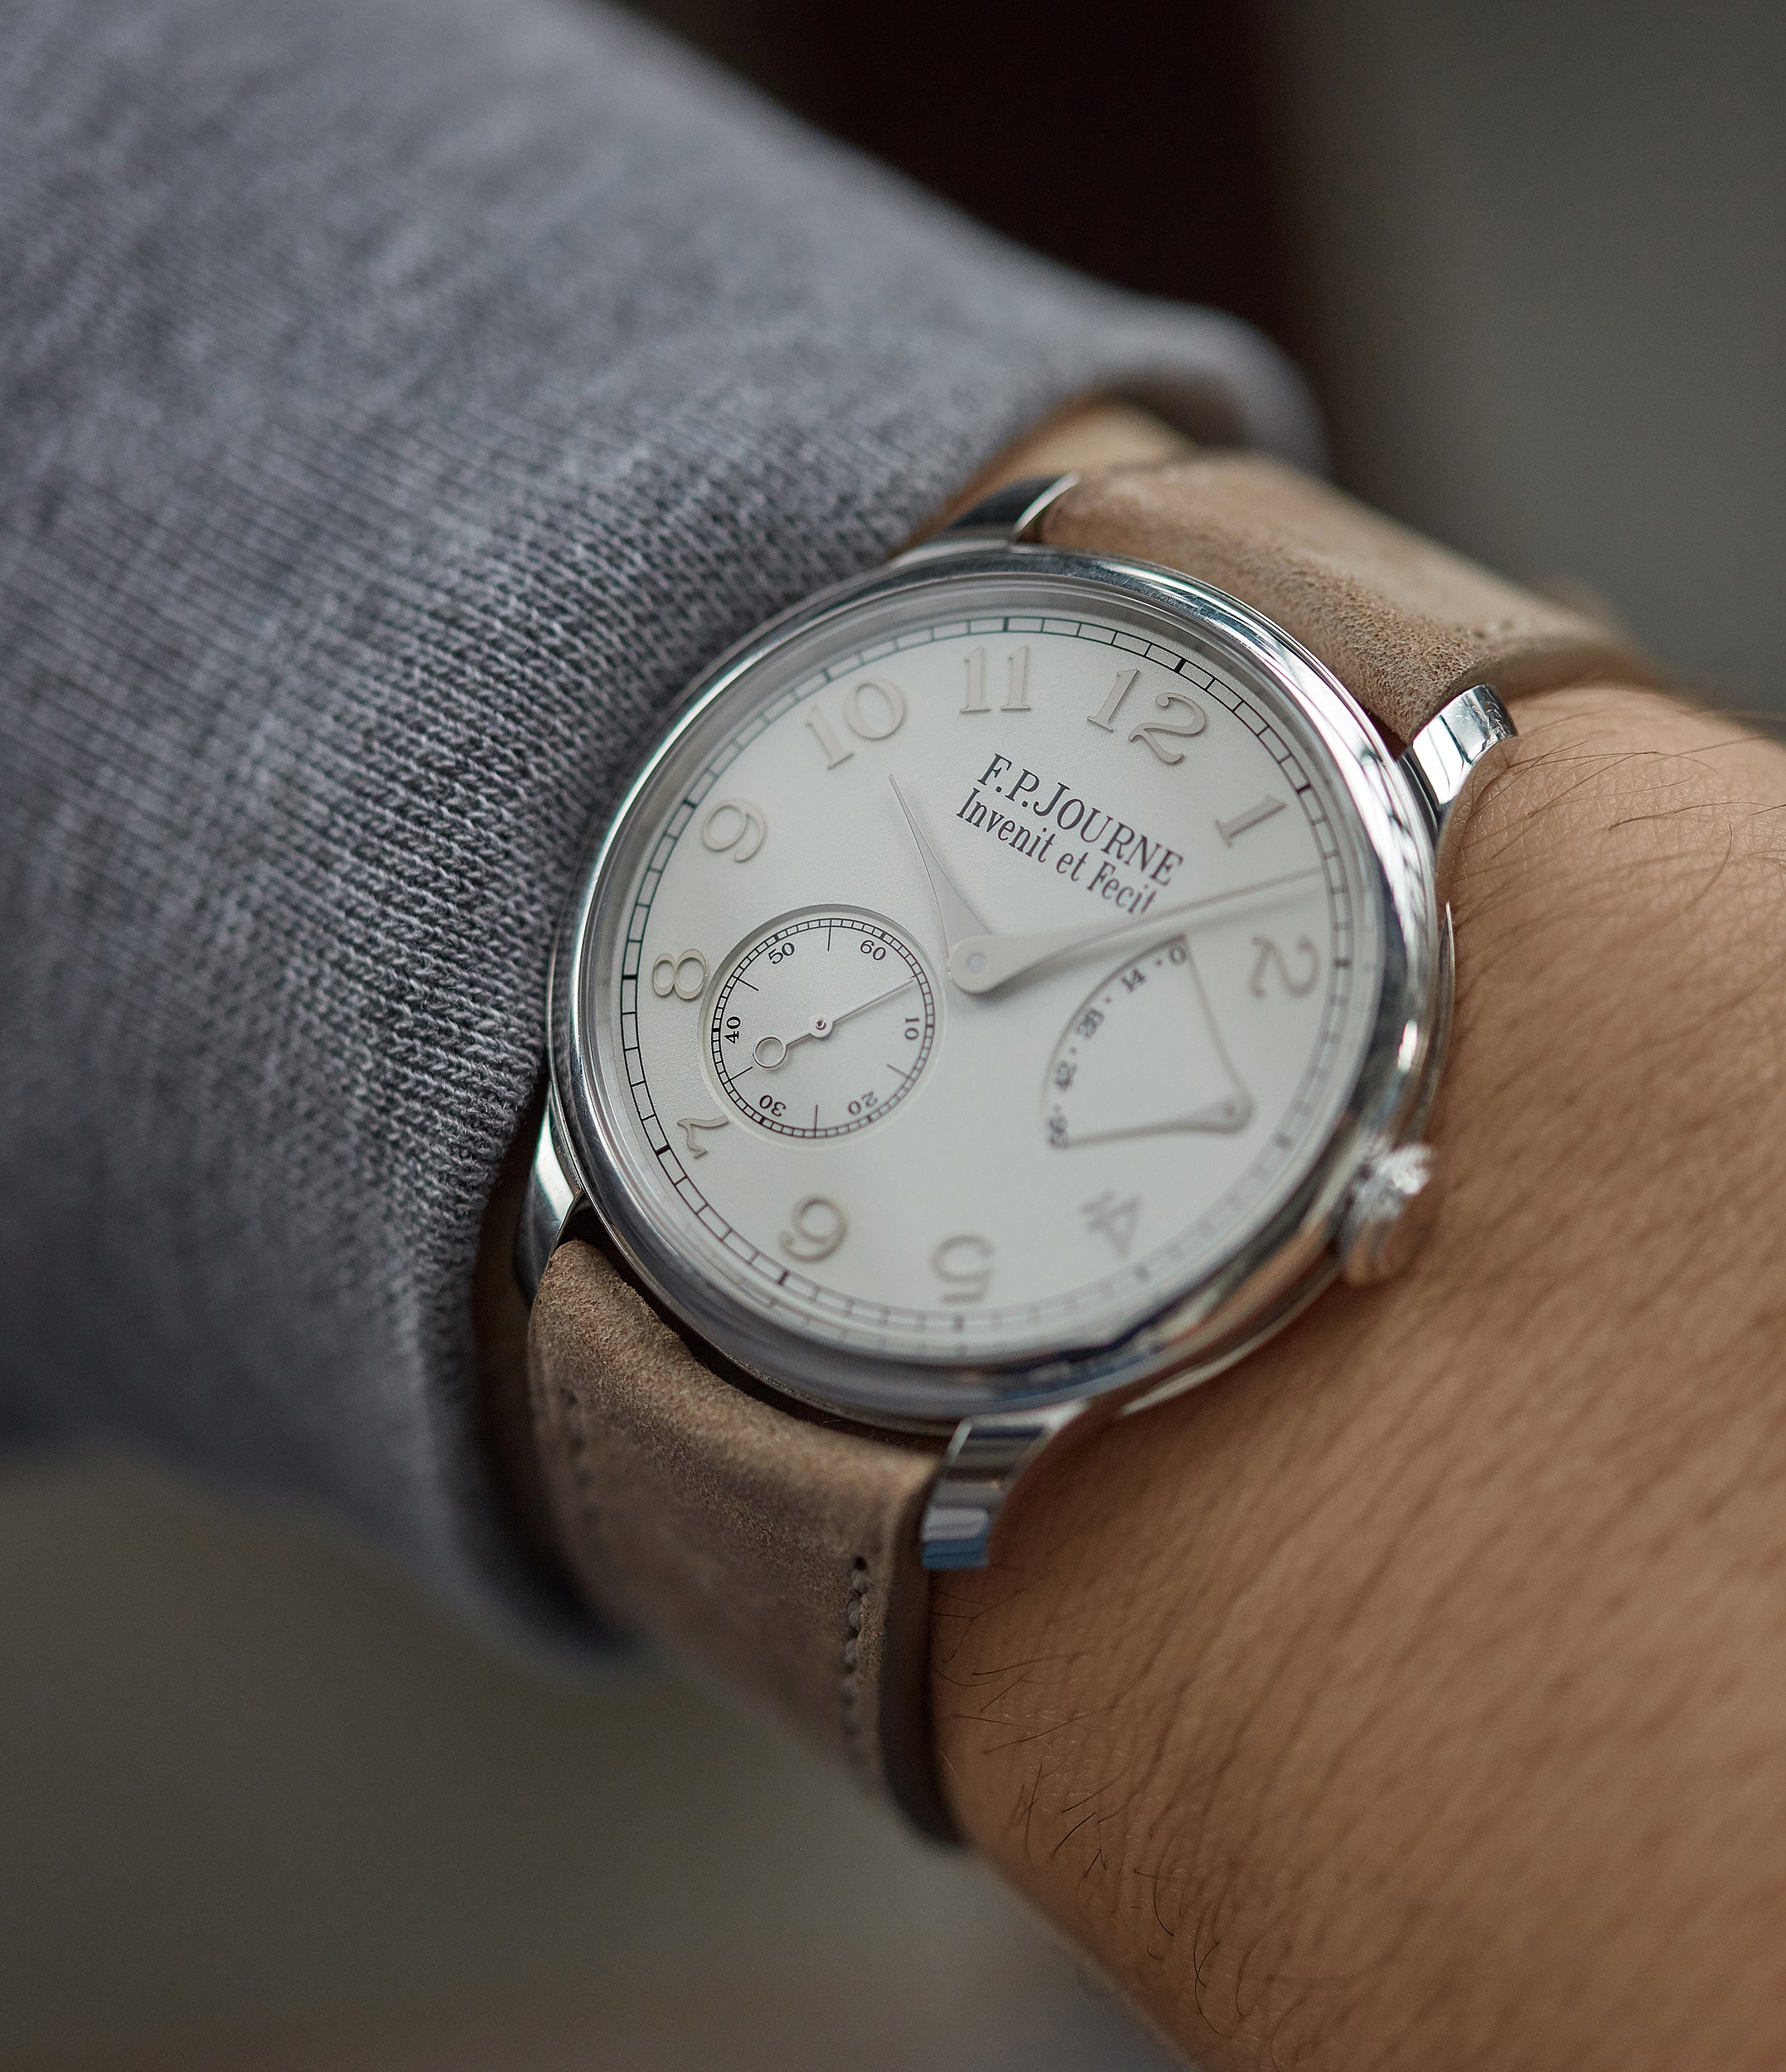 on the wrist F. P. Journe Chronometre Souverain 38mm platinum silver custom dial for sale online at A Collected Man London UK specialist of independent watchmakers